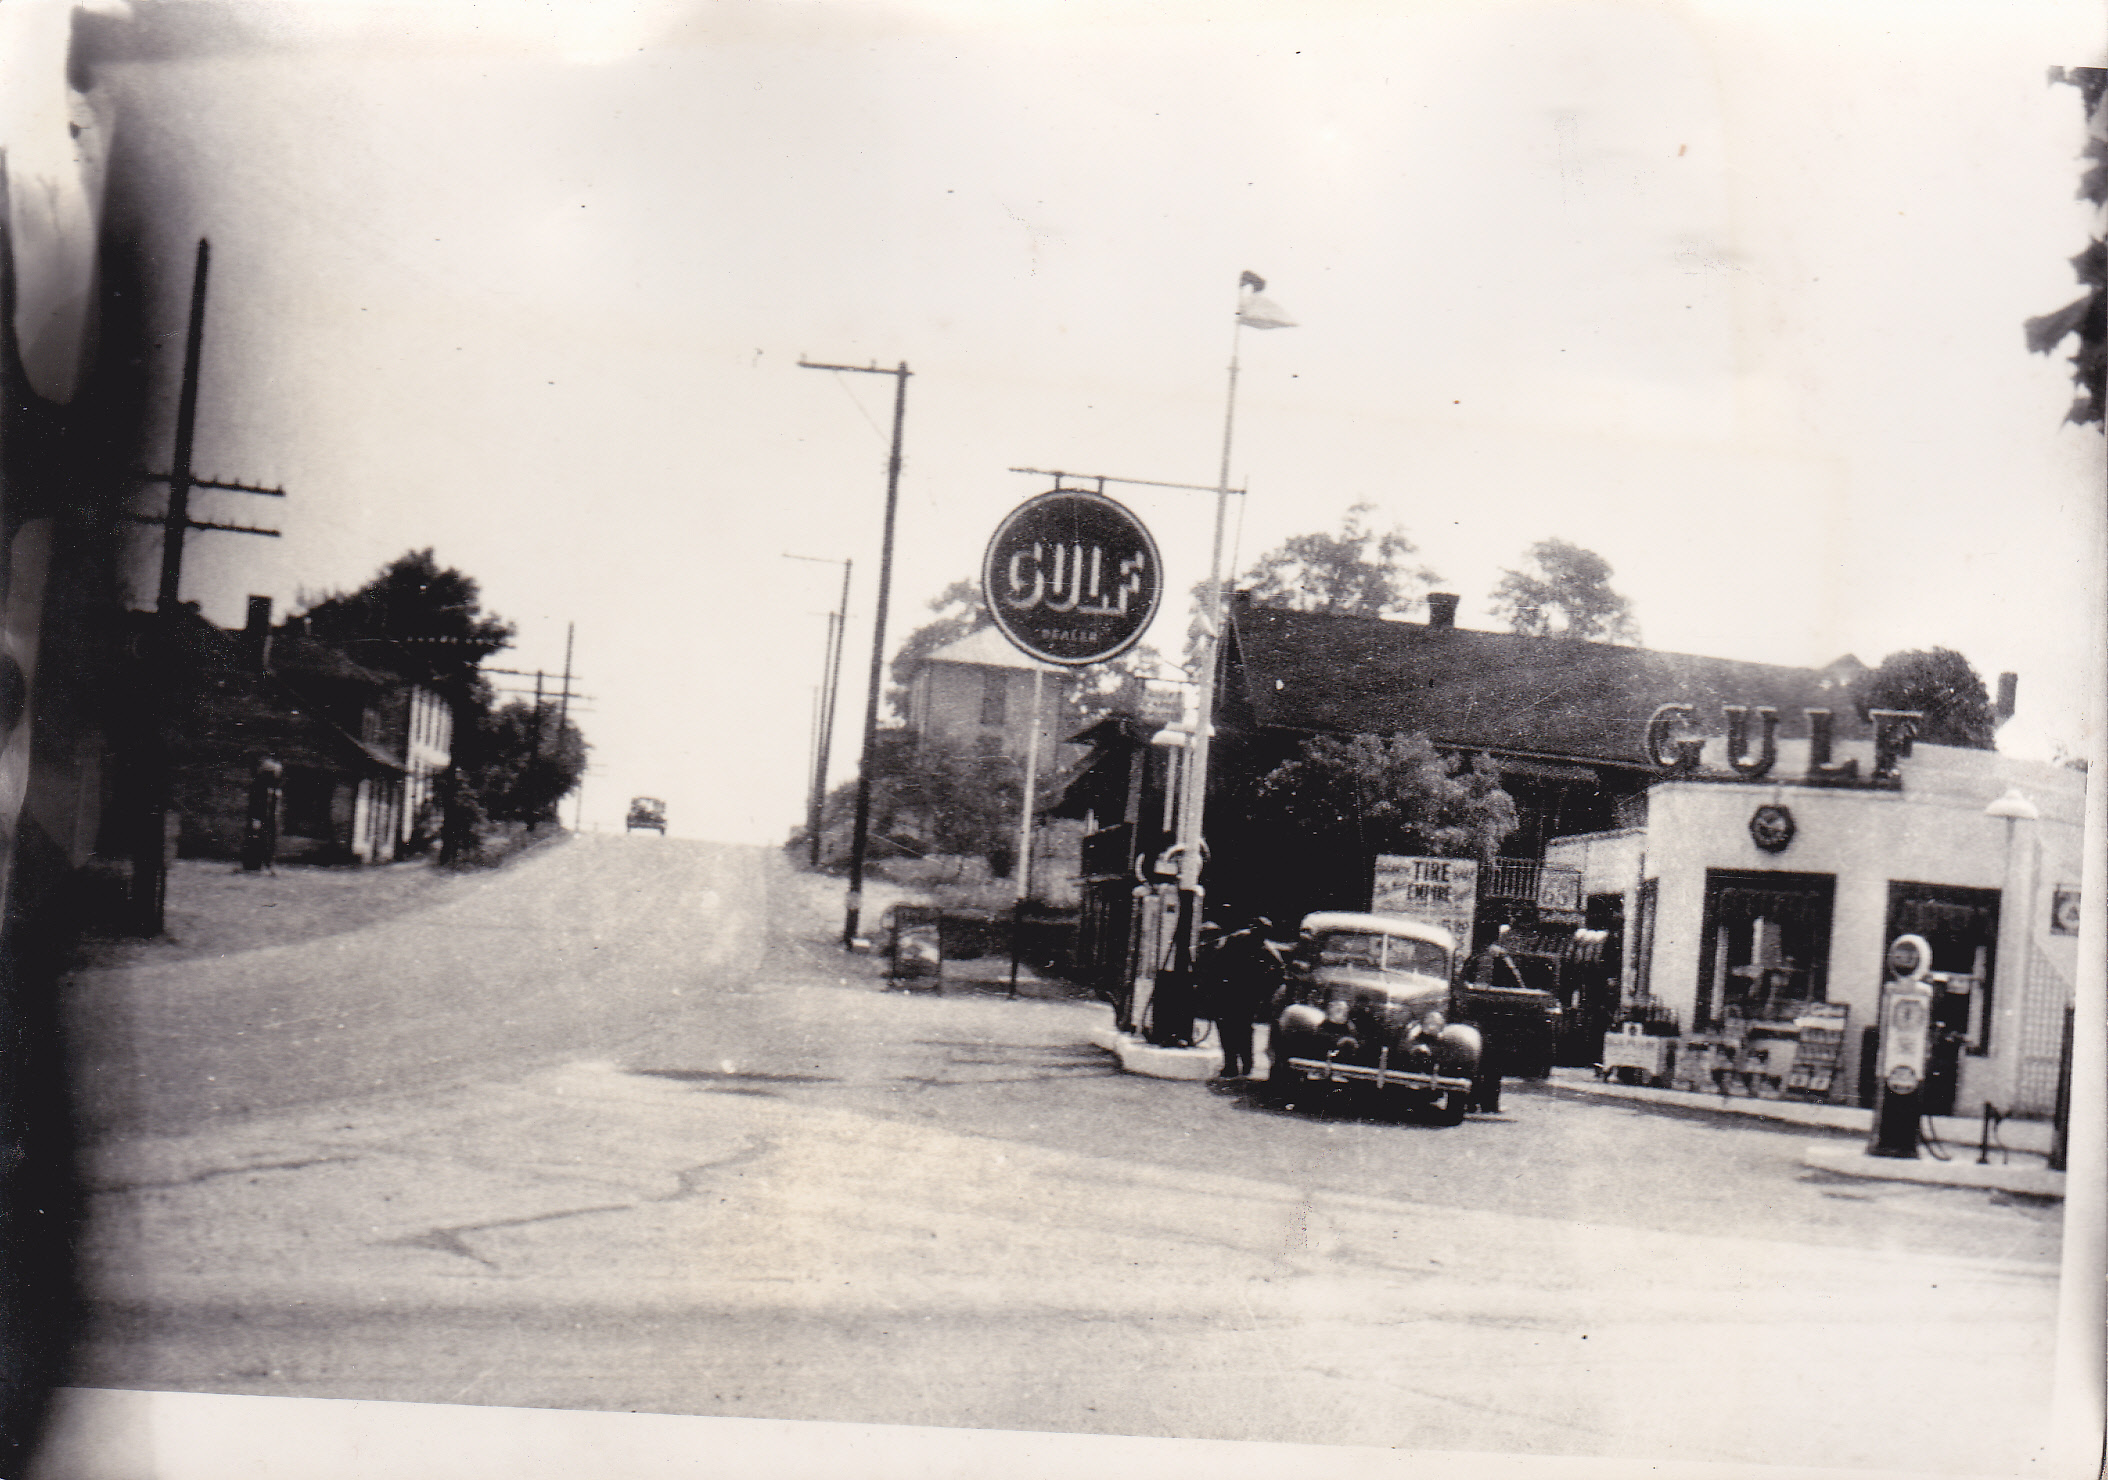 GULF GAS STATION IN FLORENCE Later it was AMOCO